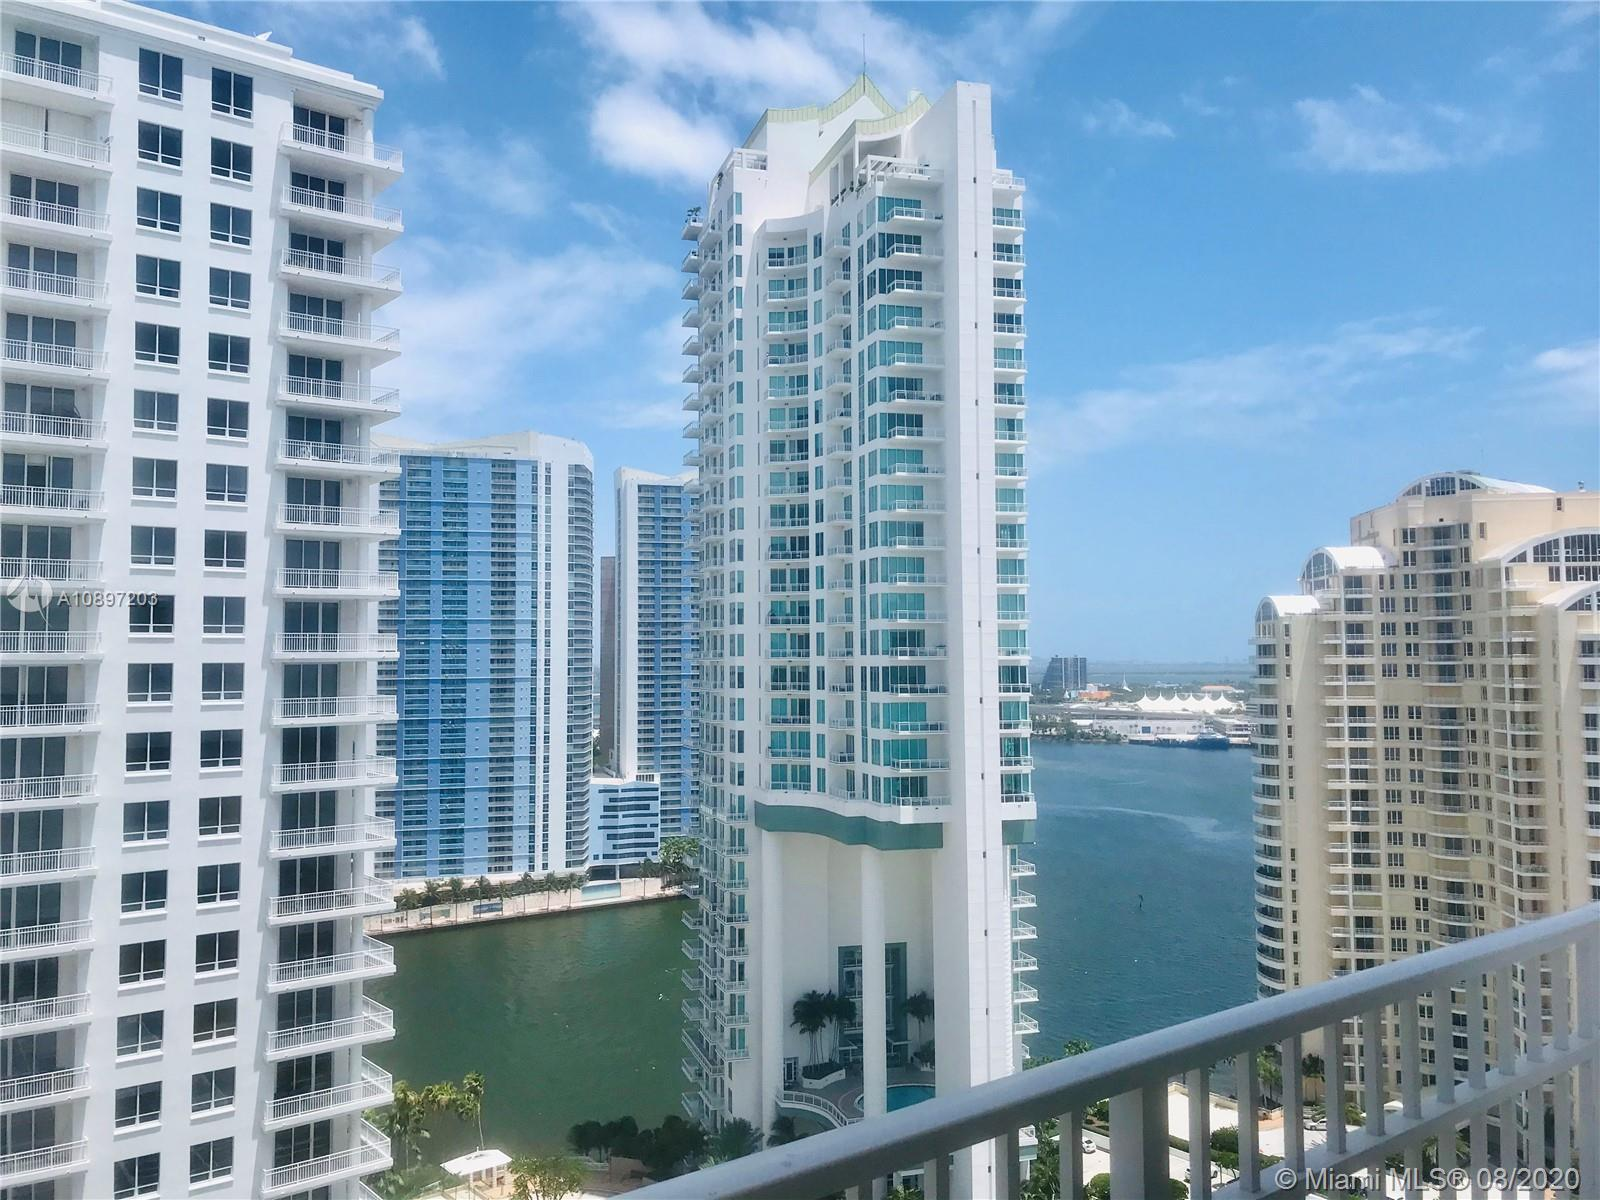 Courvoisier Courts #LPH-08 - 701 Brickell Key Blvd #LPH-08, Miami, FL 33131